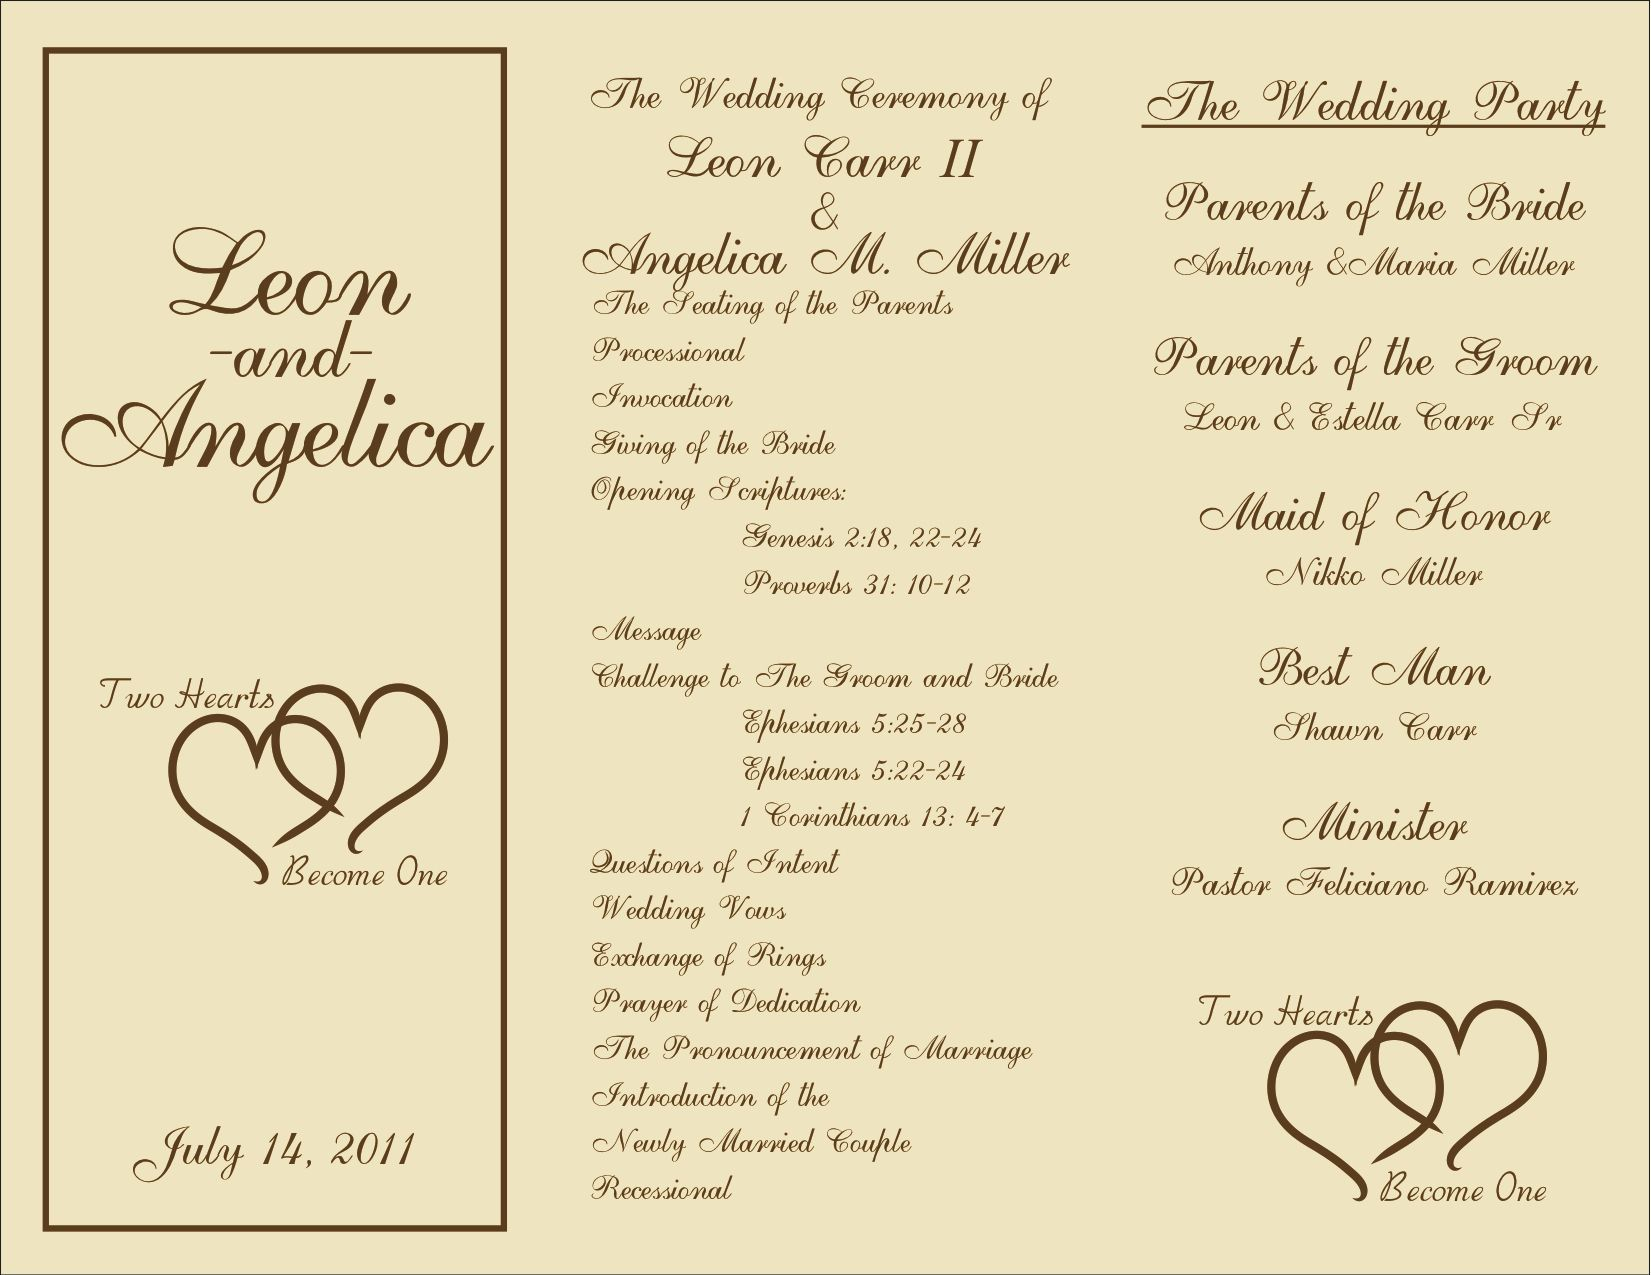 008 Breathtaking Wedding Reception Program Template Image  Templates Layout Free Download Ceremony AndFull